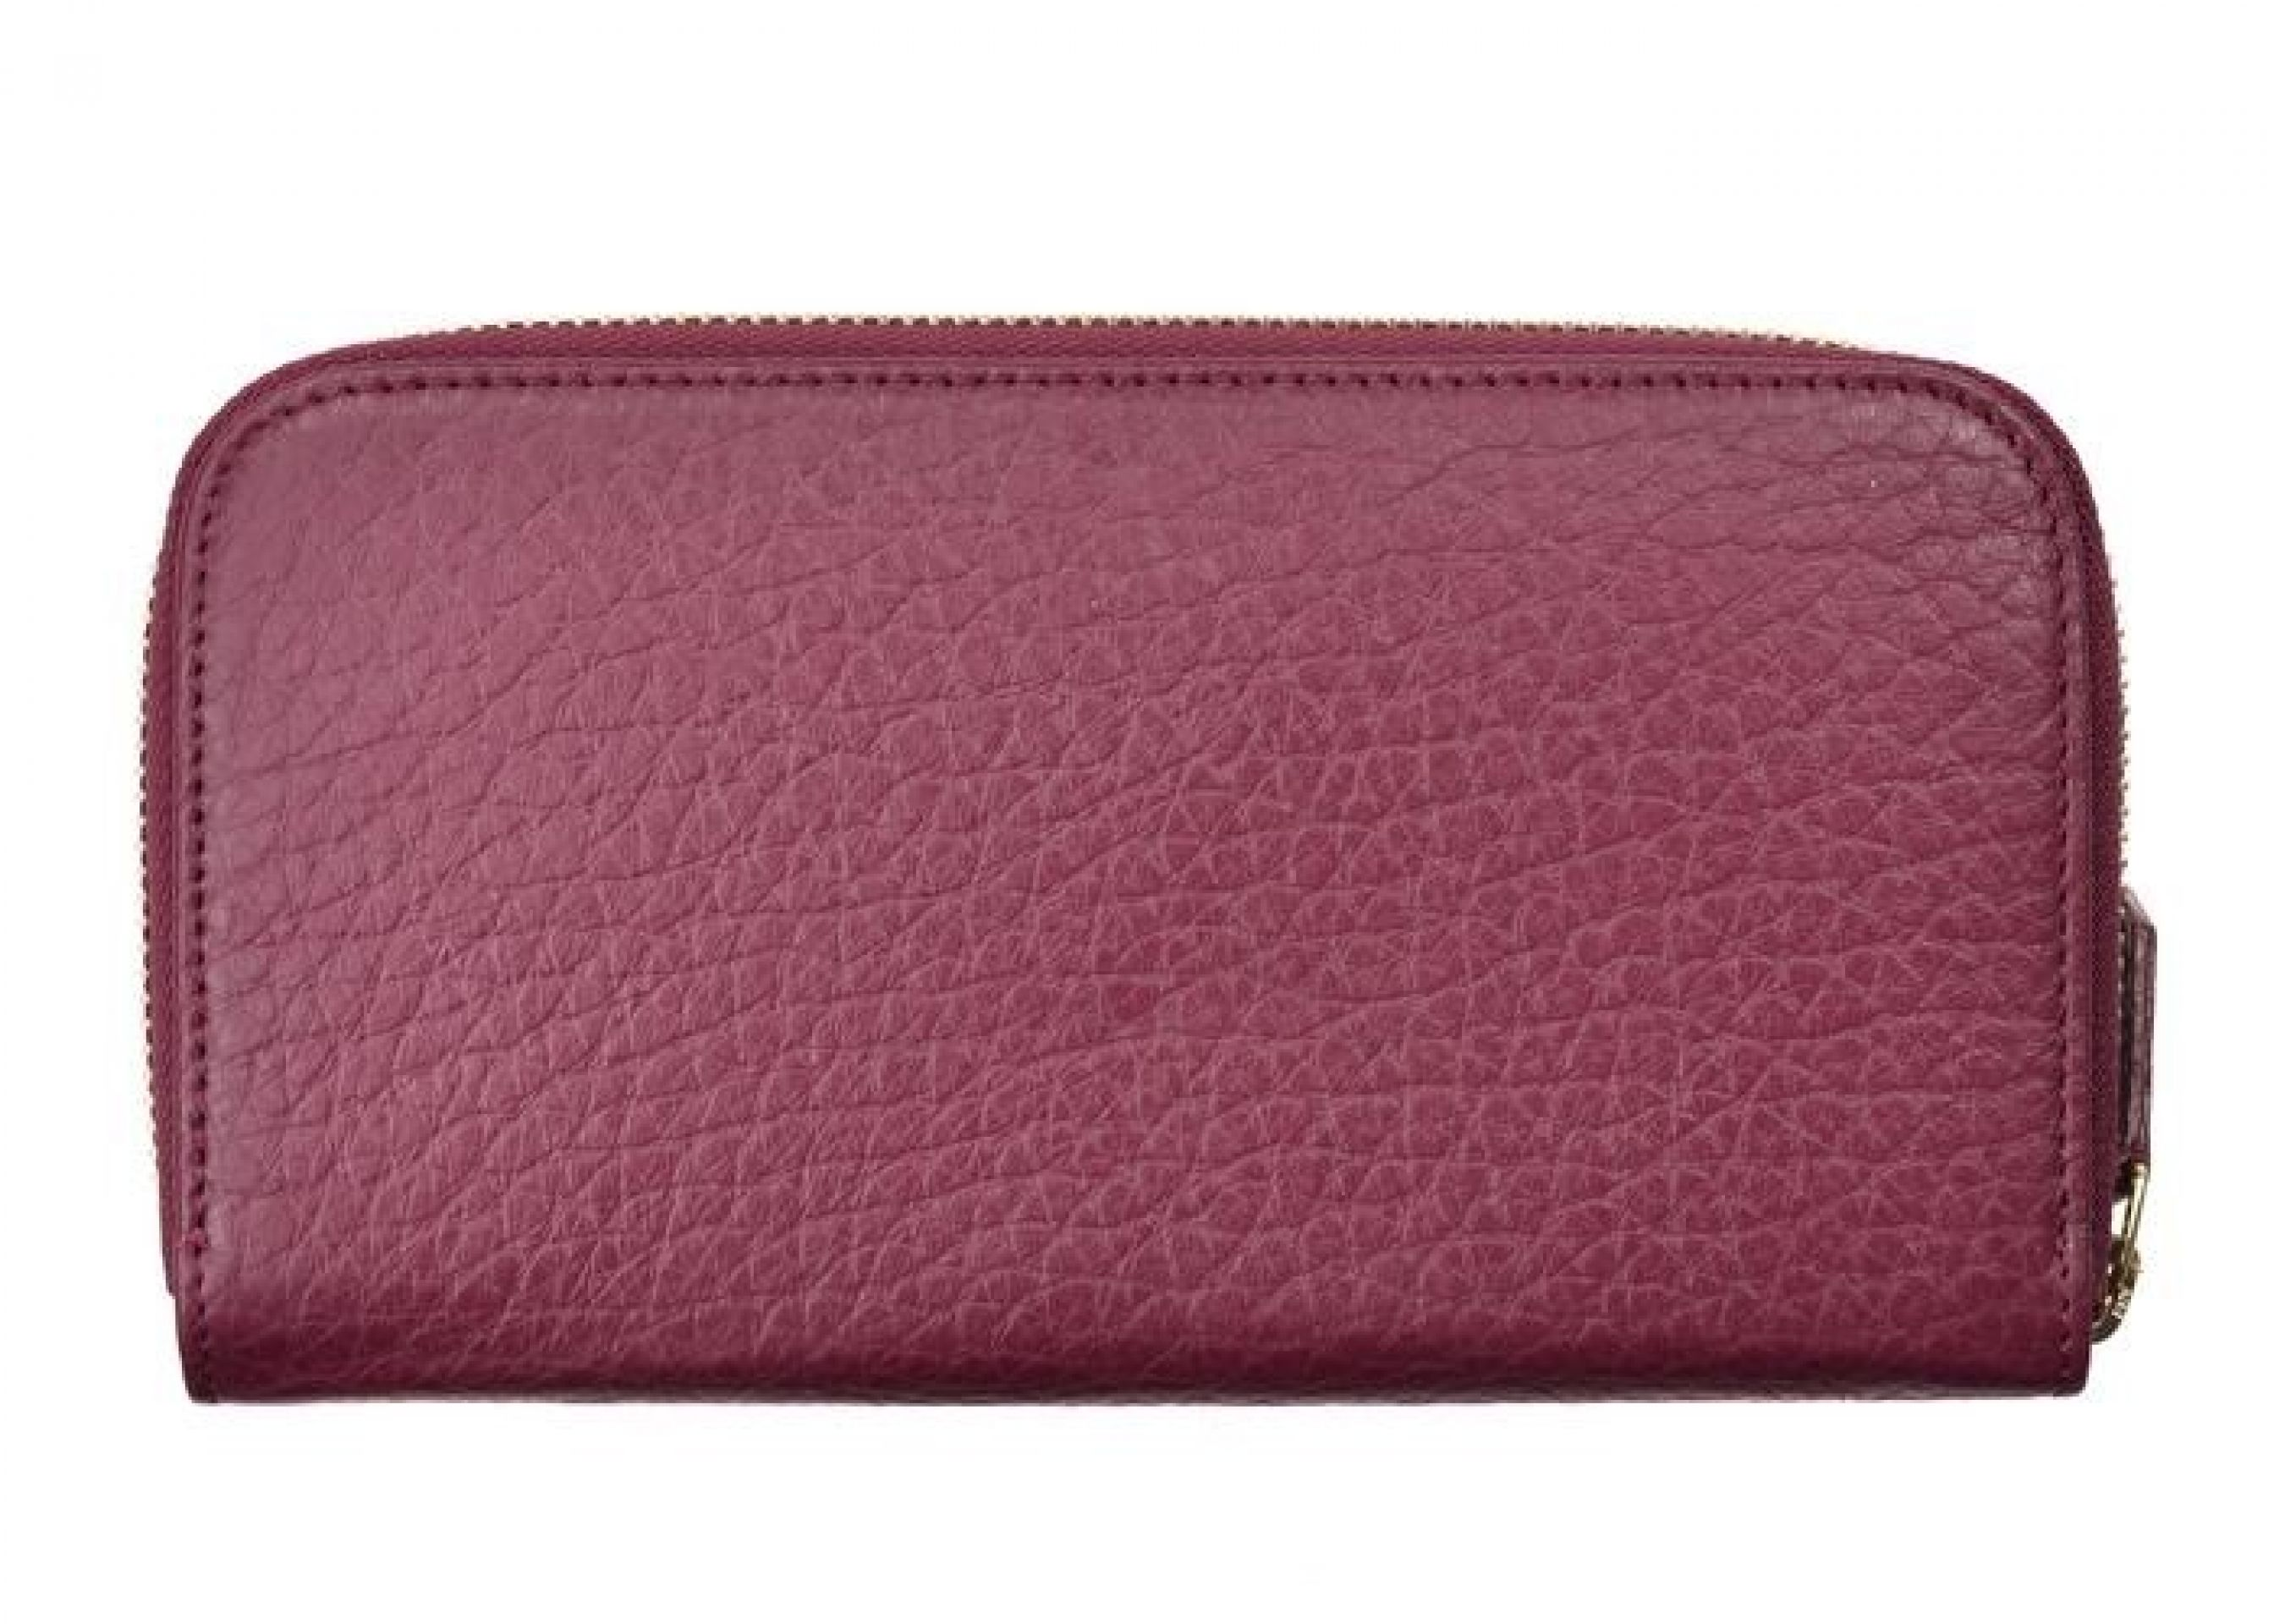 VERSACE COLLECTION BURGUNDY GRAINED LEATHER ZIP CONTINENTAL WALLET